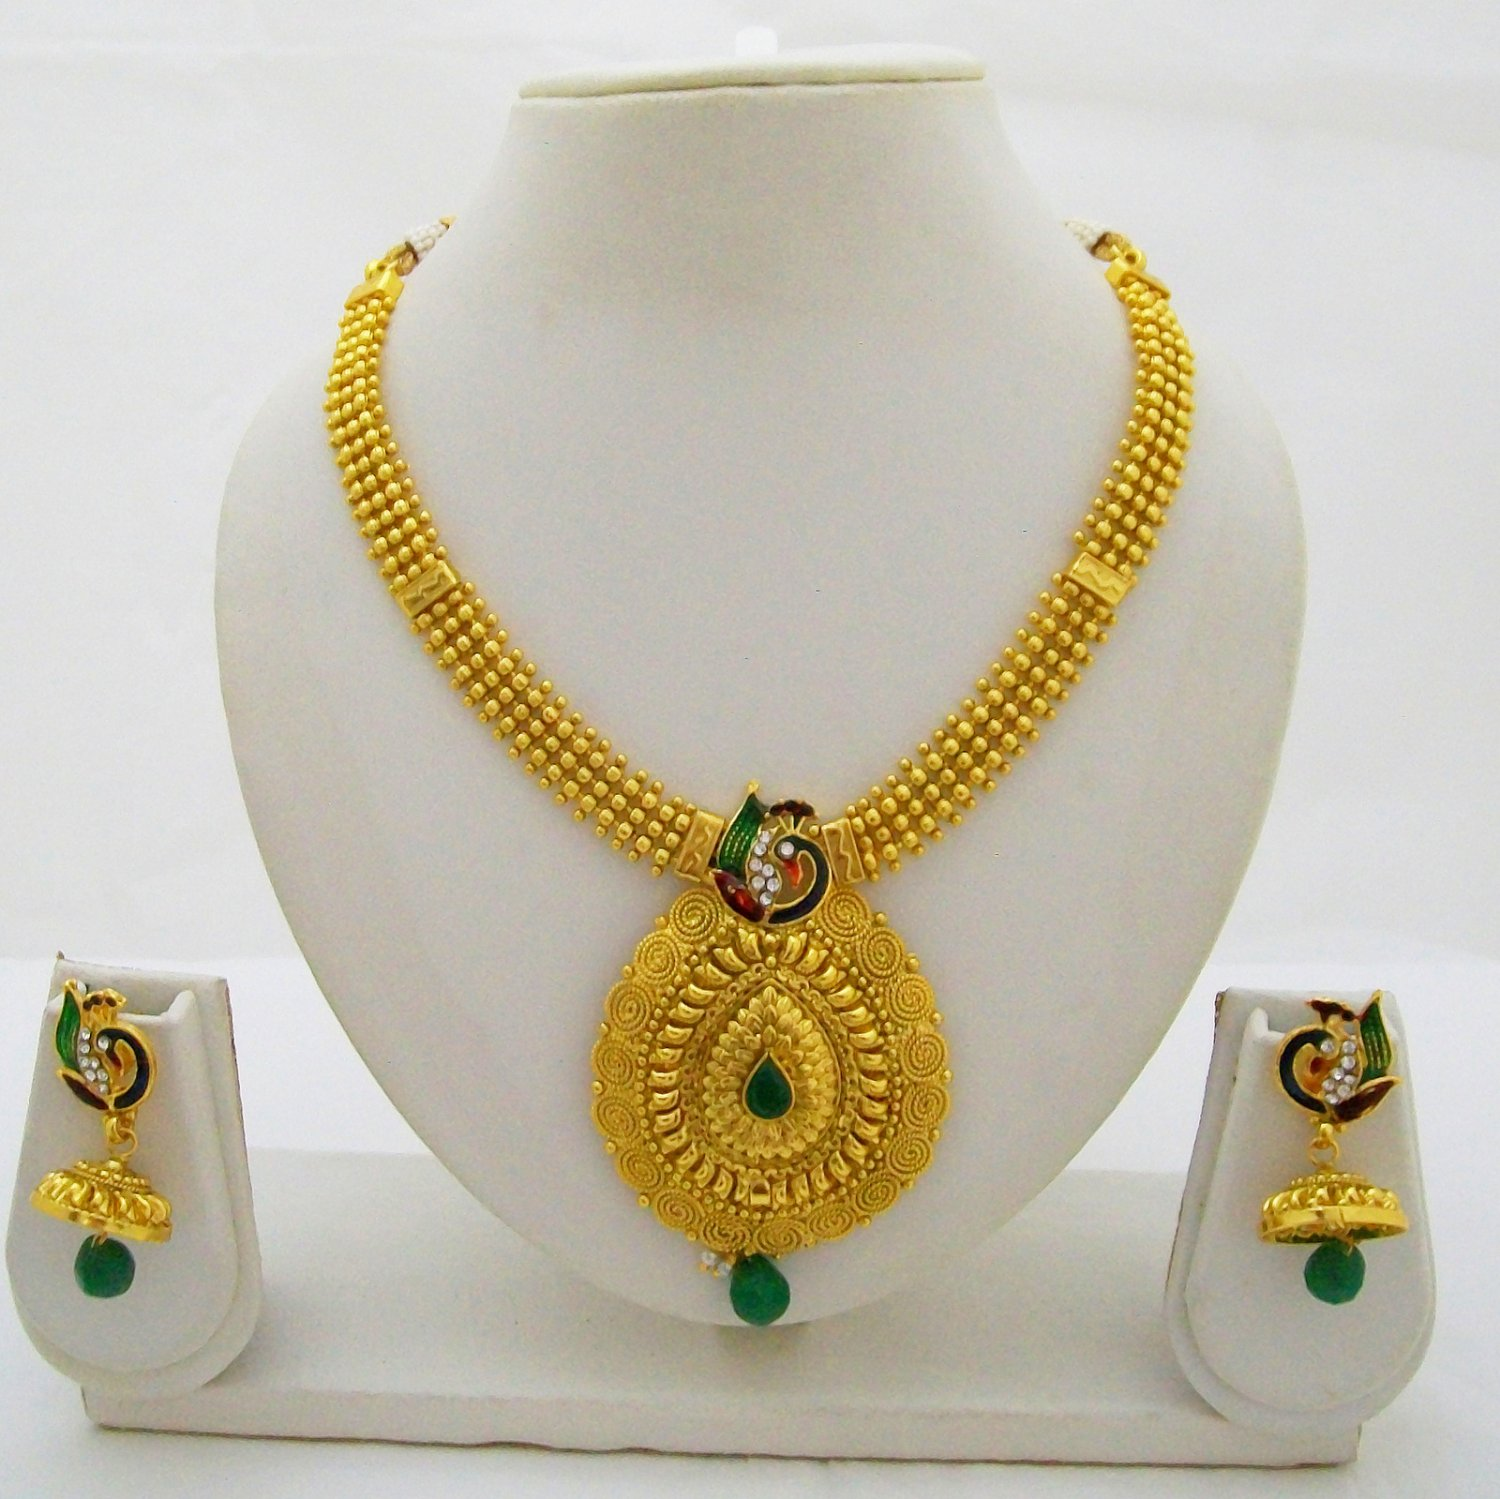 Meenakari Peacock Gold Plated Beads Necklace Jhumka Indian Wedding Jewelry Set